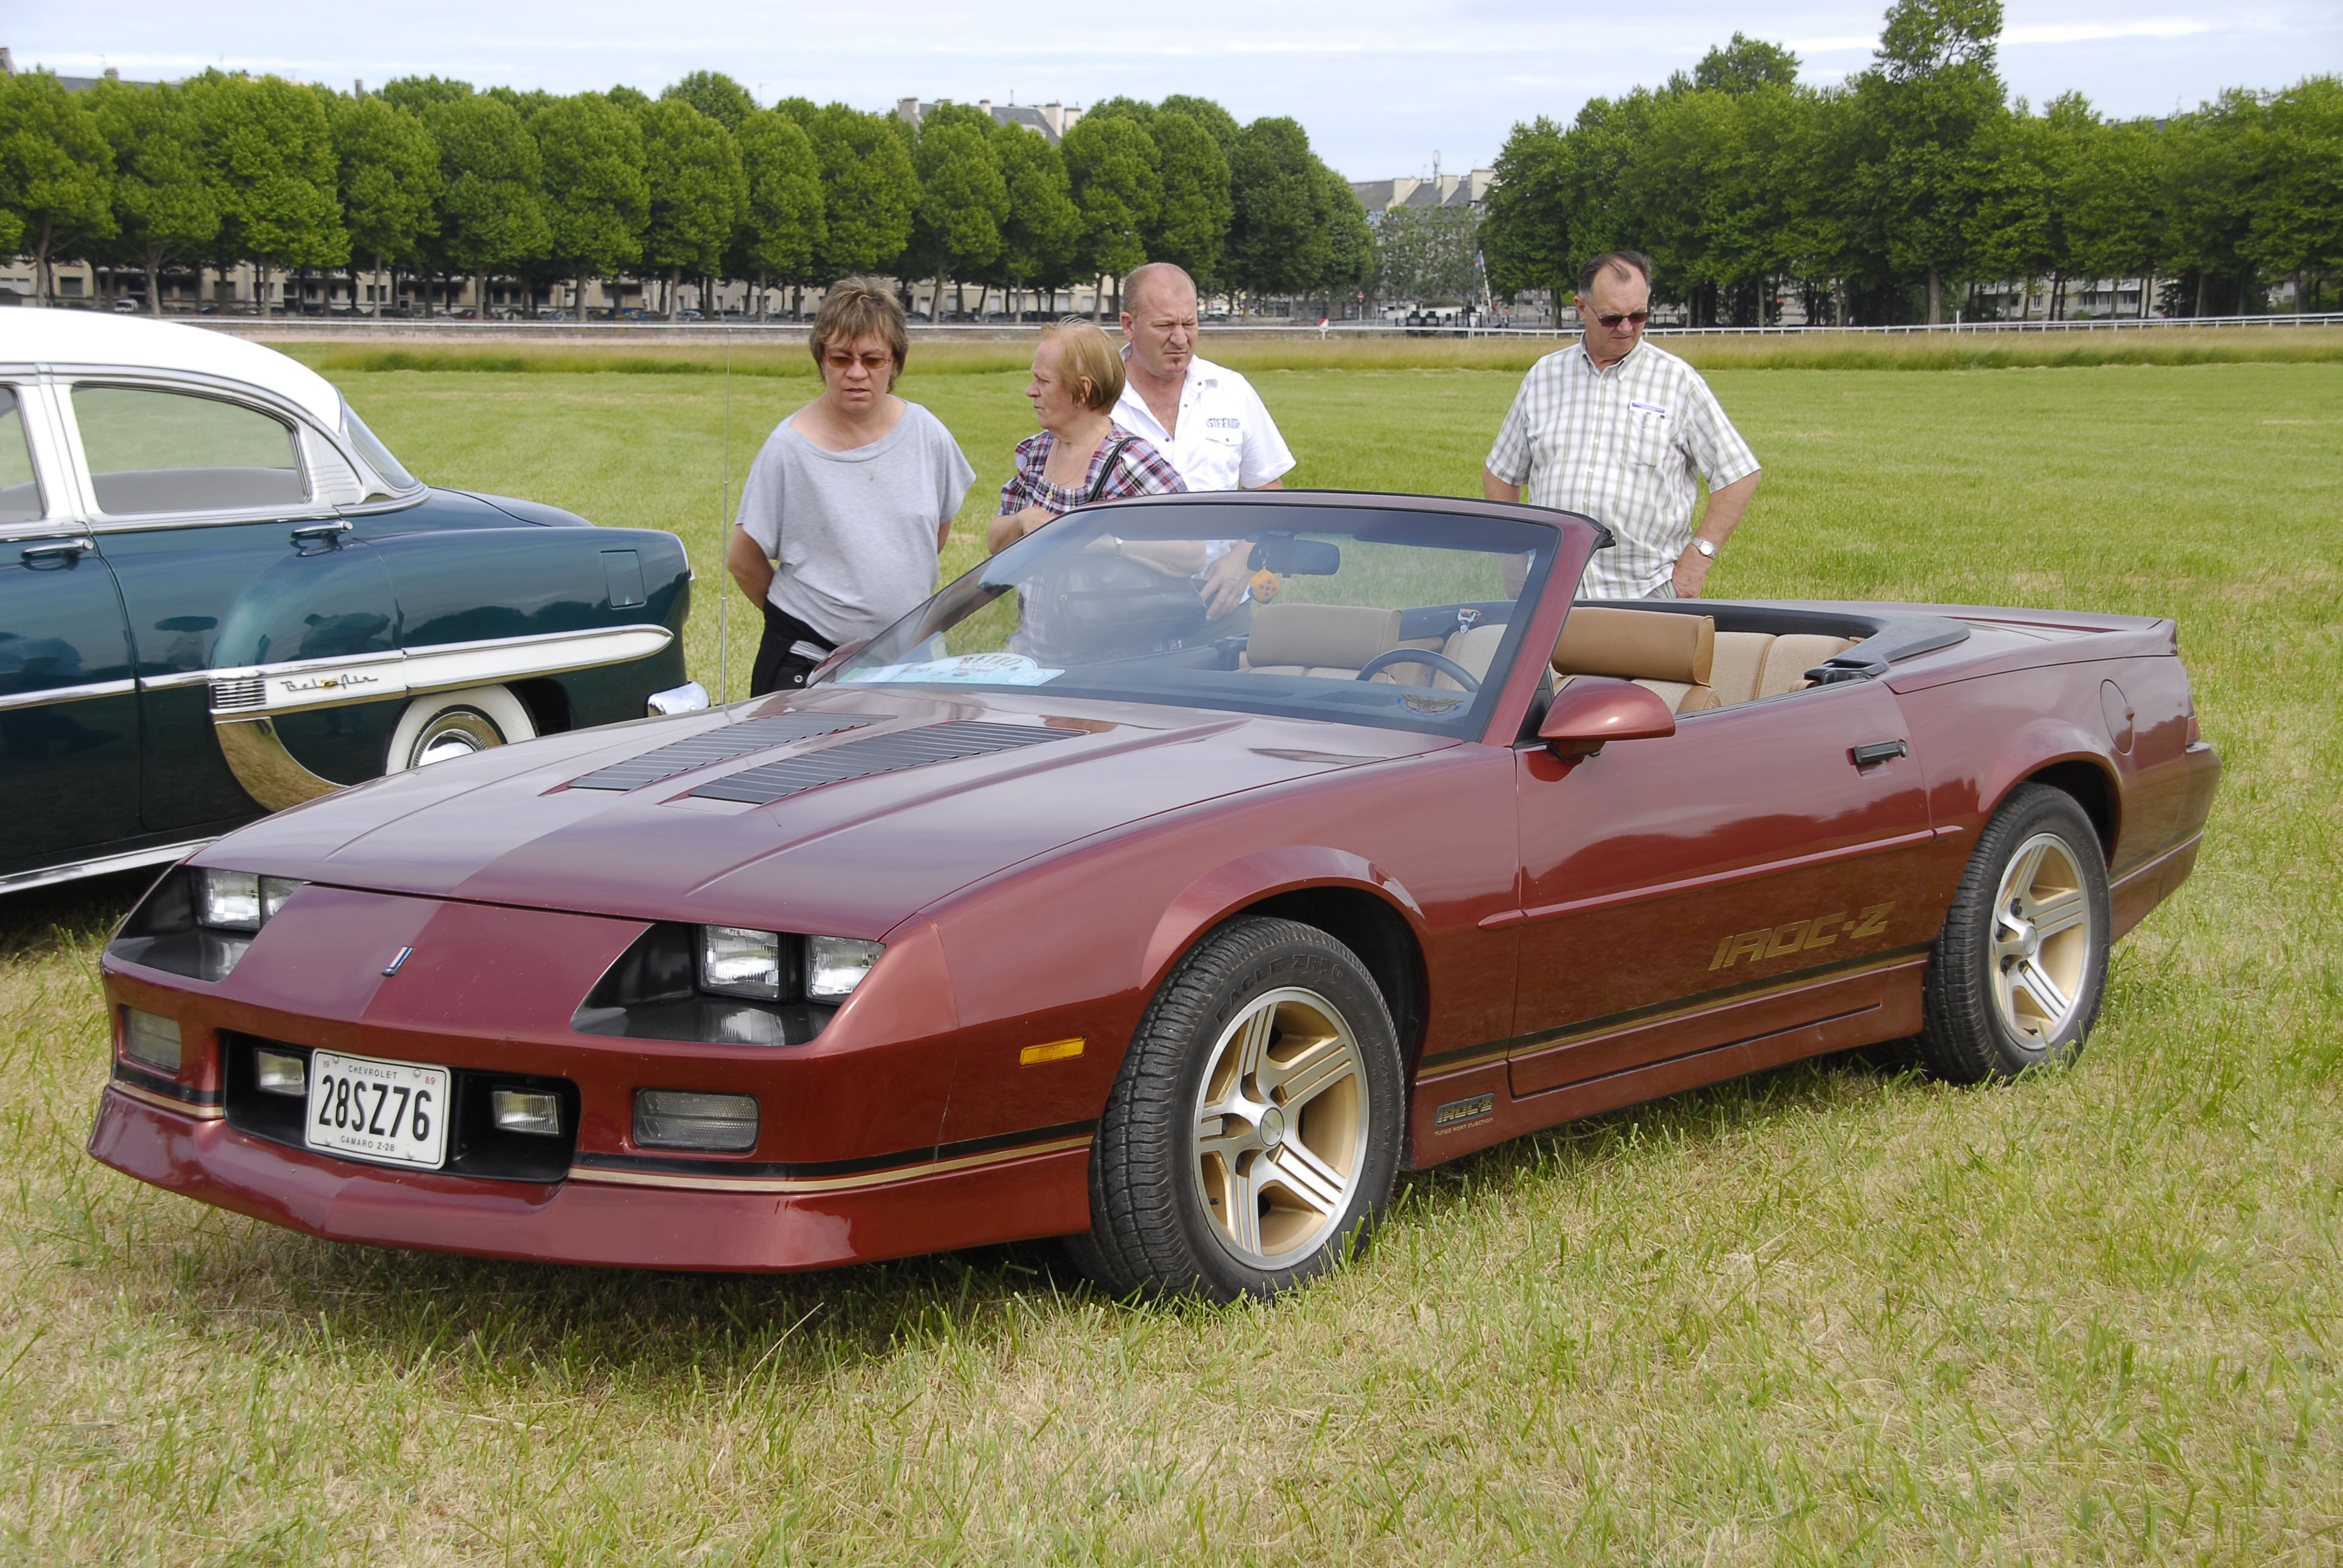 1989 chevrolet camaro Z28 iroc-Z | Flickr - Photo Sharing!